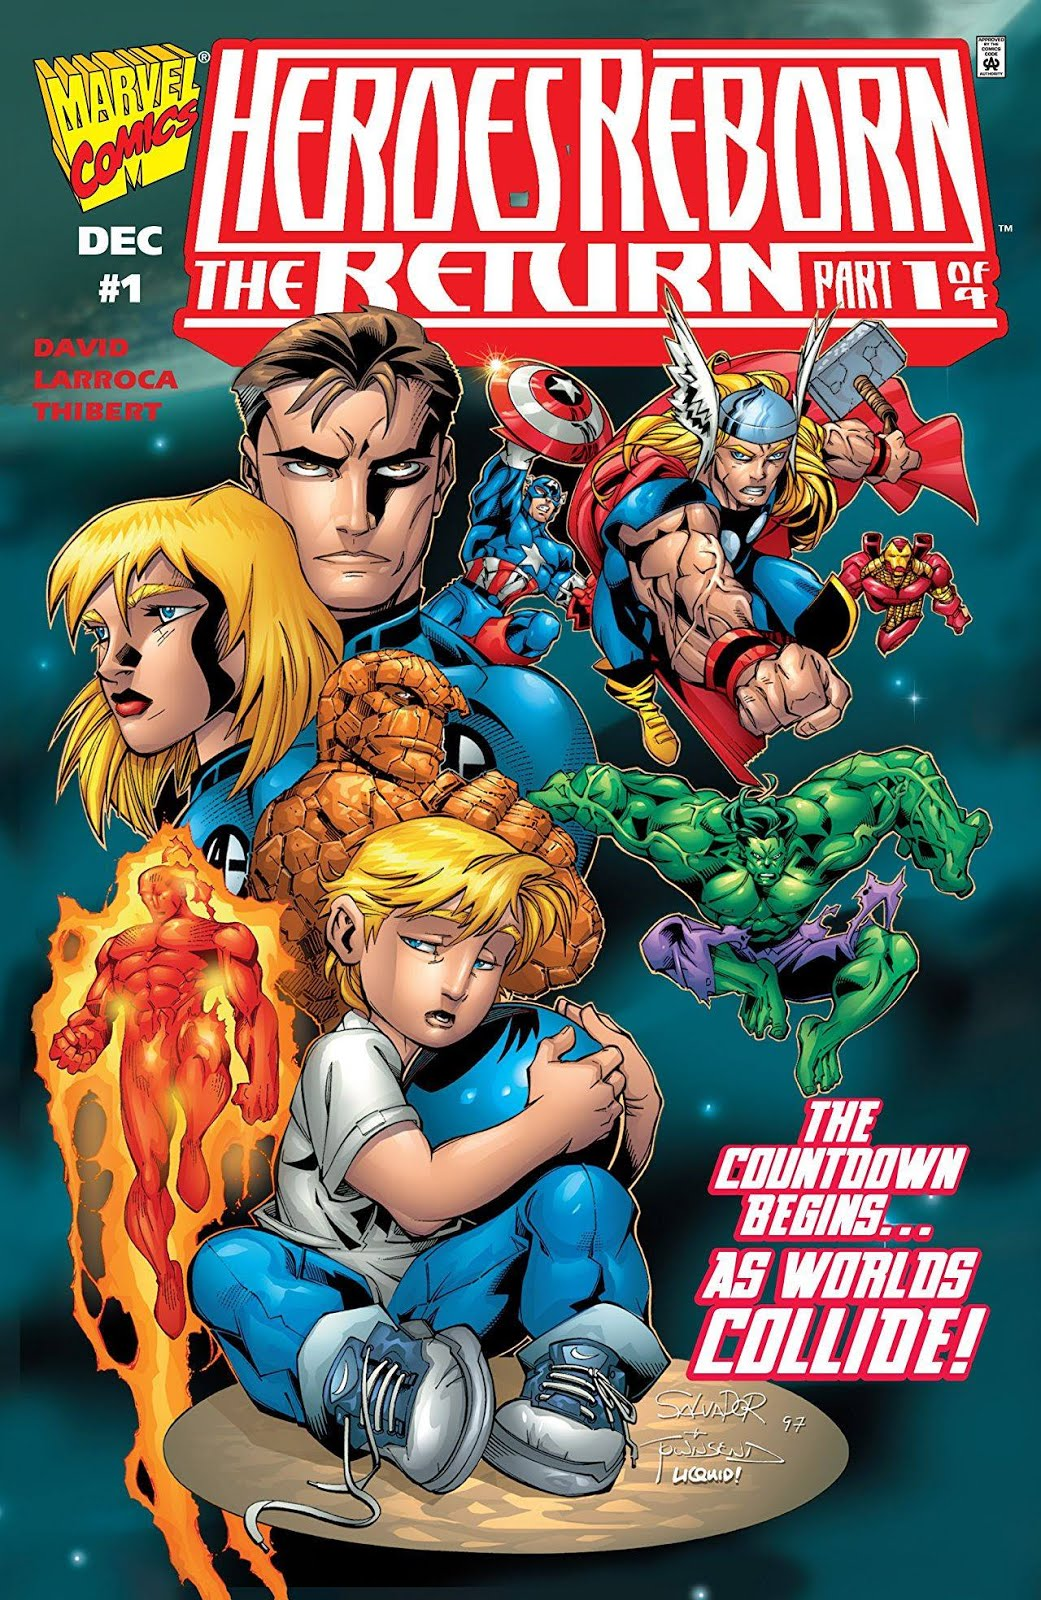 reconsidering franklin richards versions of the marvel universe